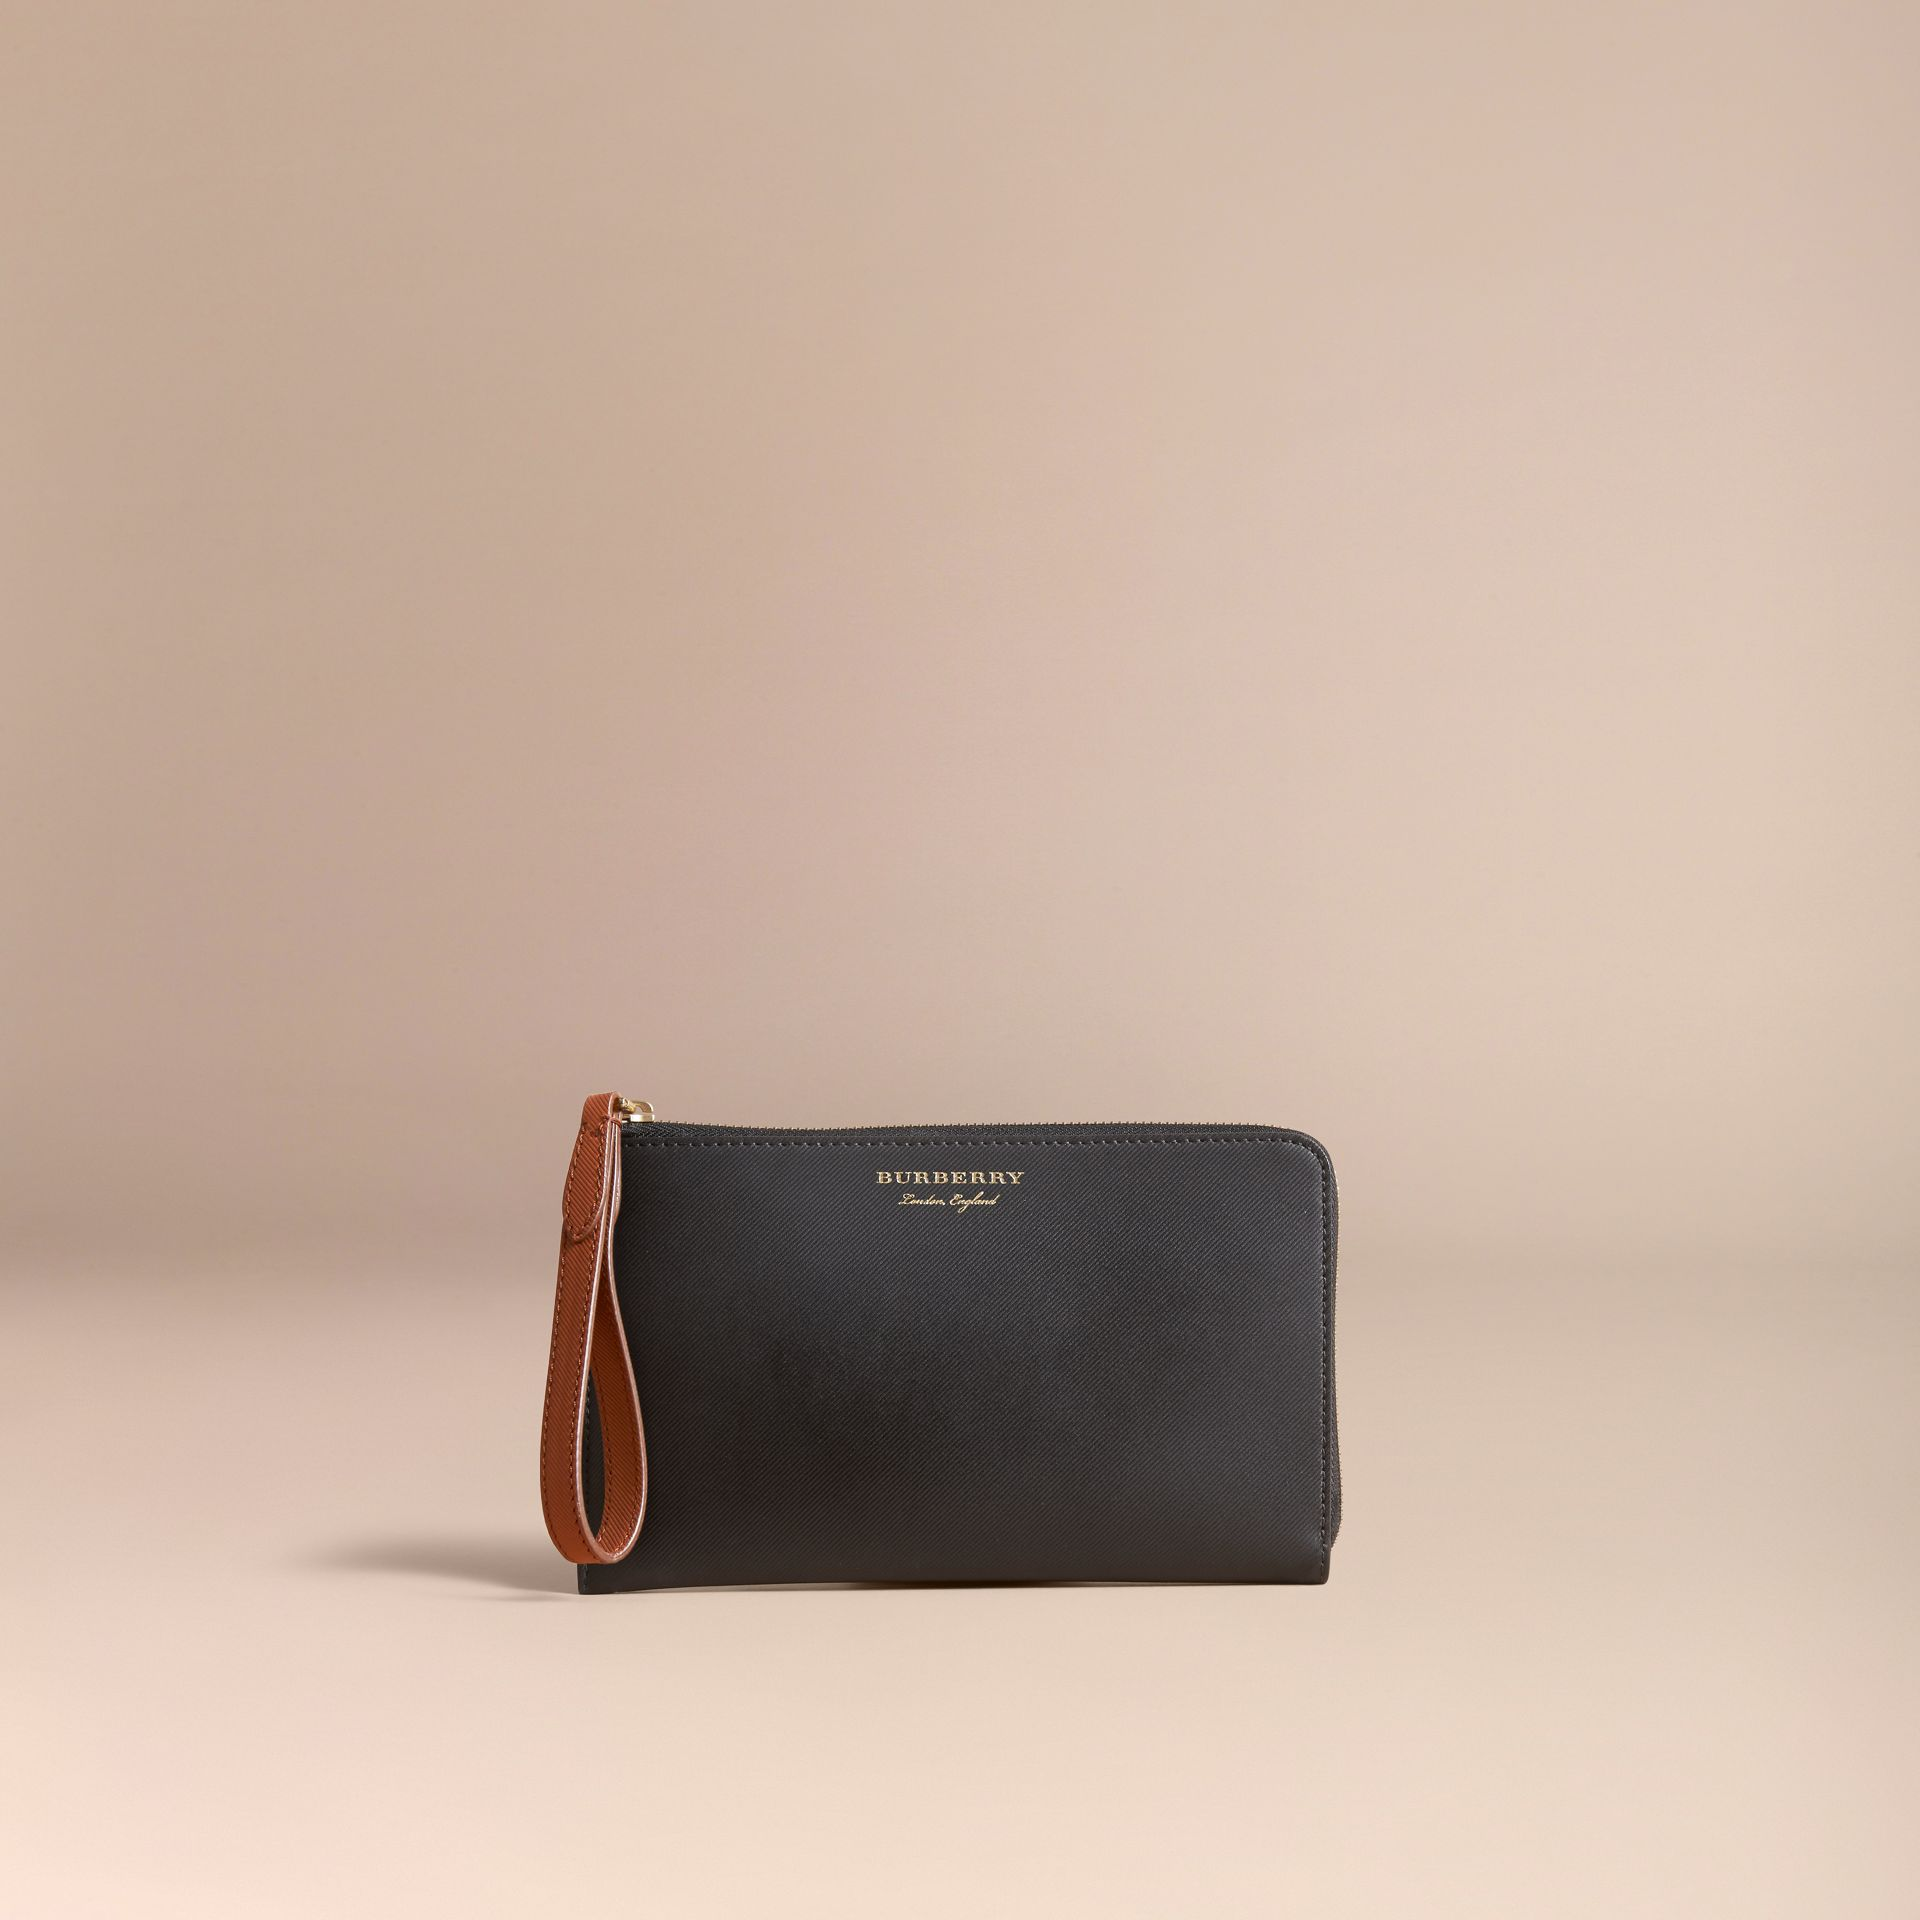 Two-tone Trench Leather Travel Wallet in Black - Men | Burberry Canada - gallery image 5